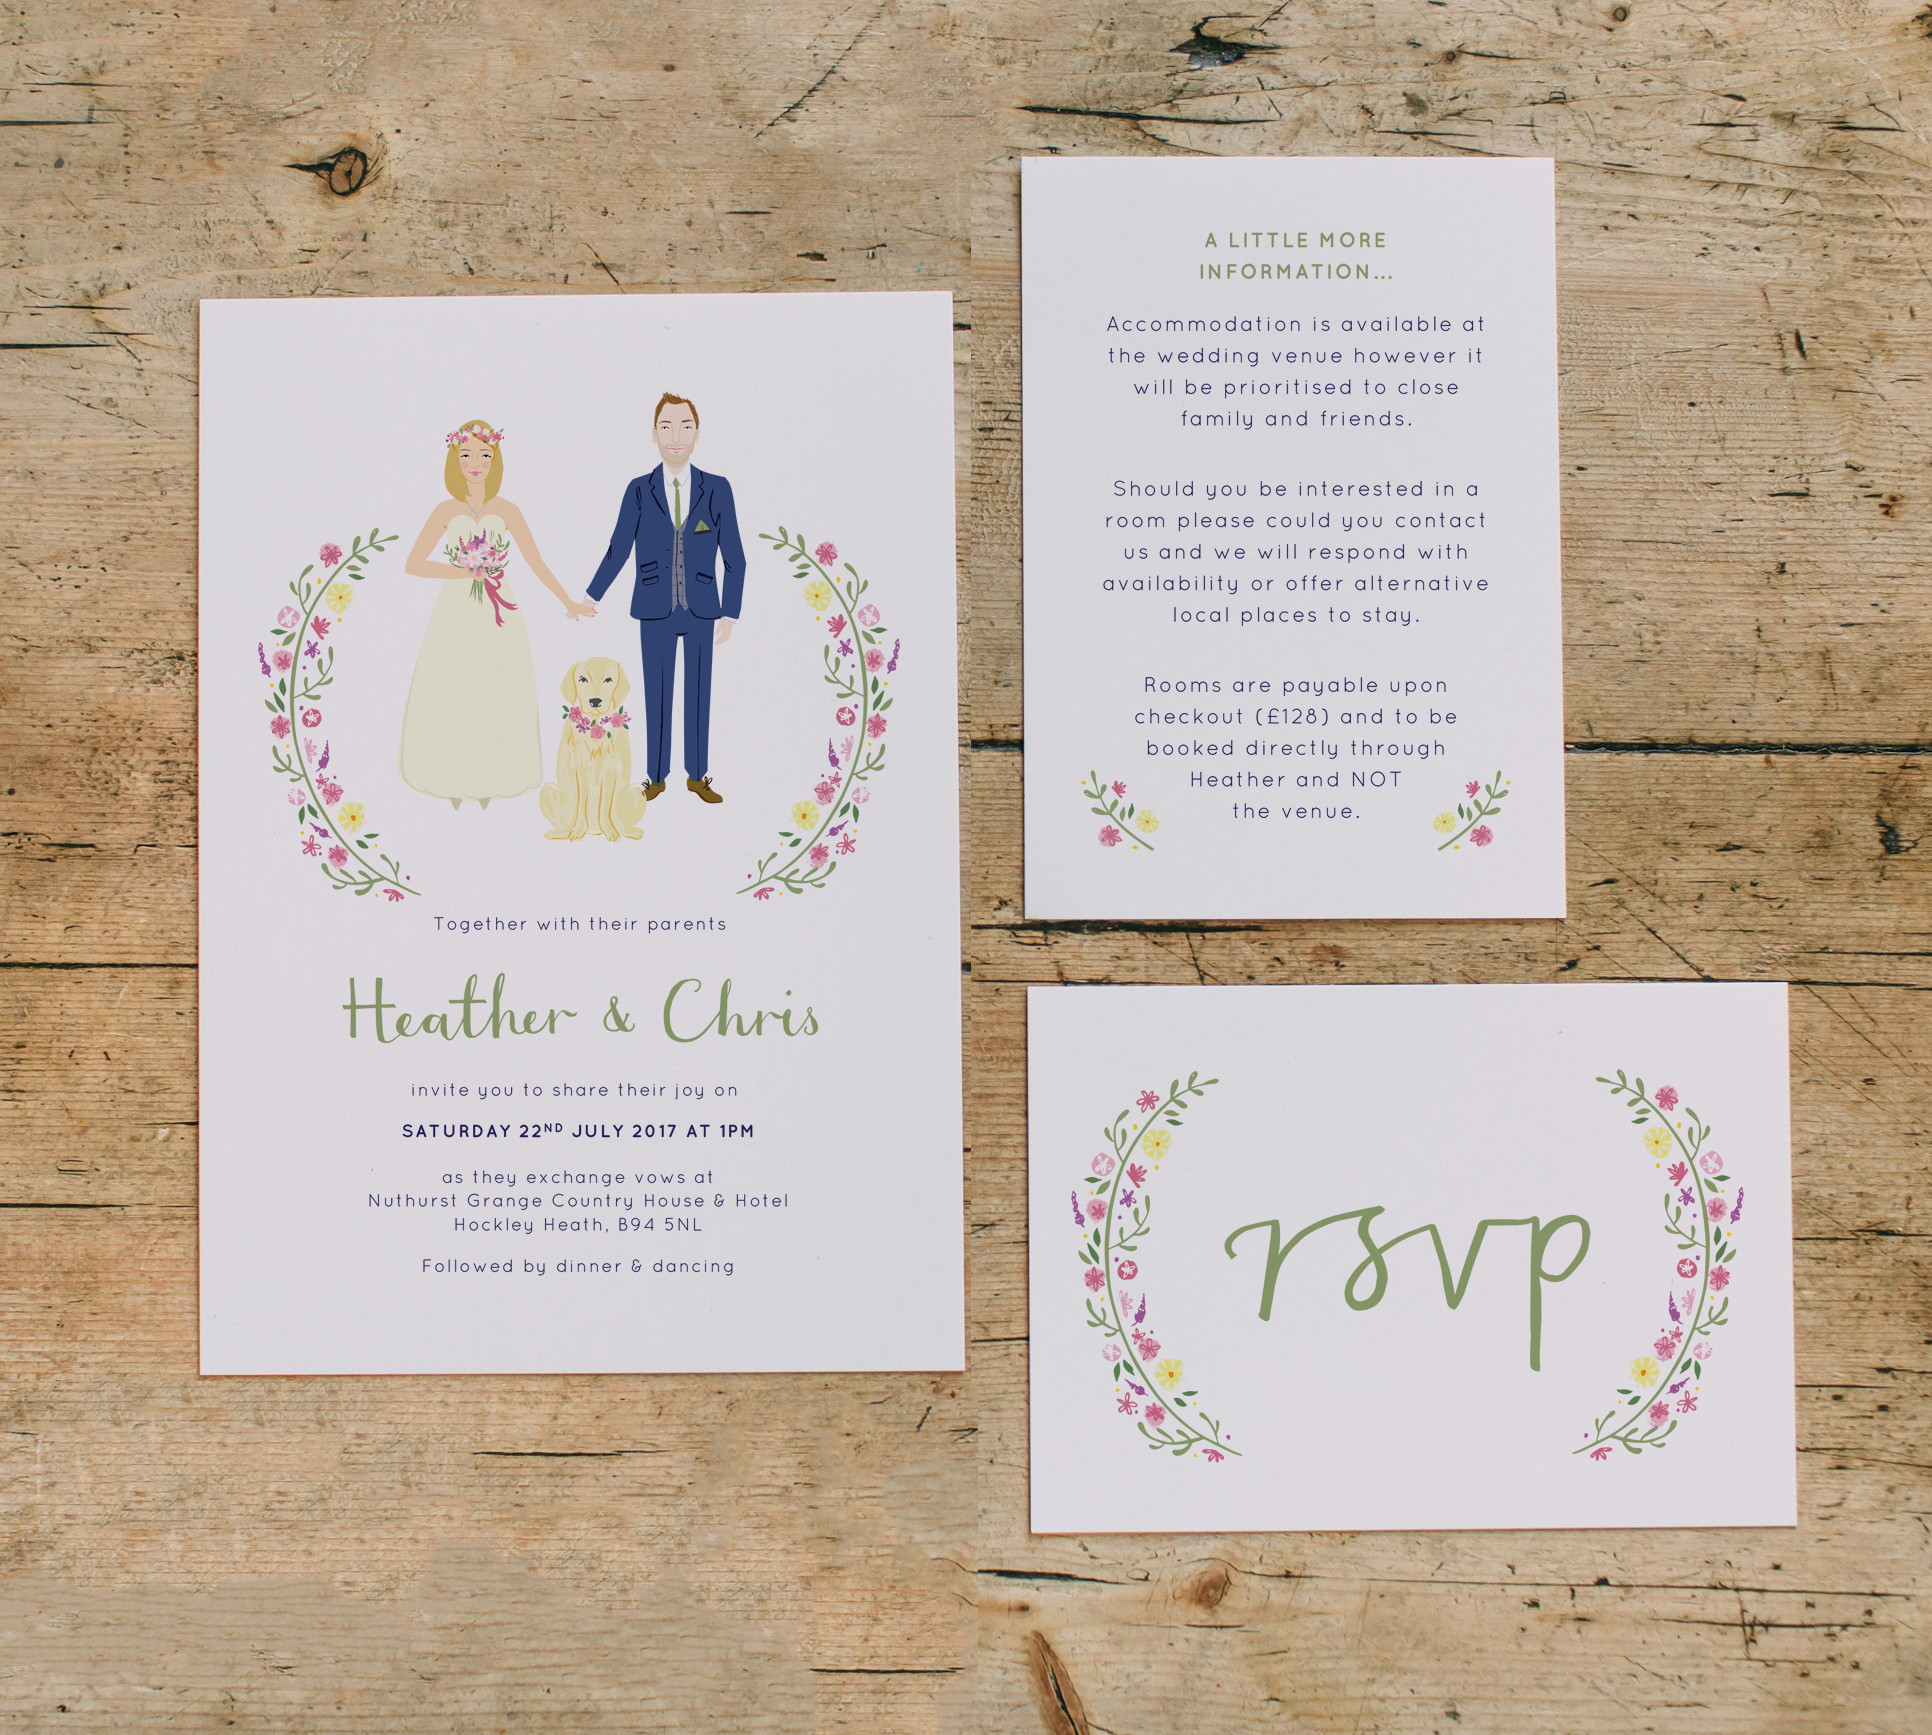 Dearly-Beloved_Heather&Chris_Wedding-stationery.jpg